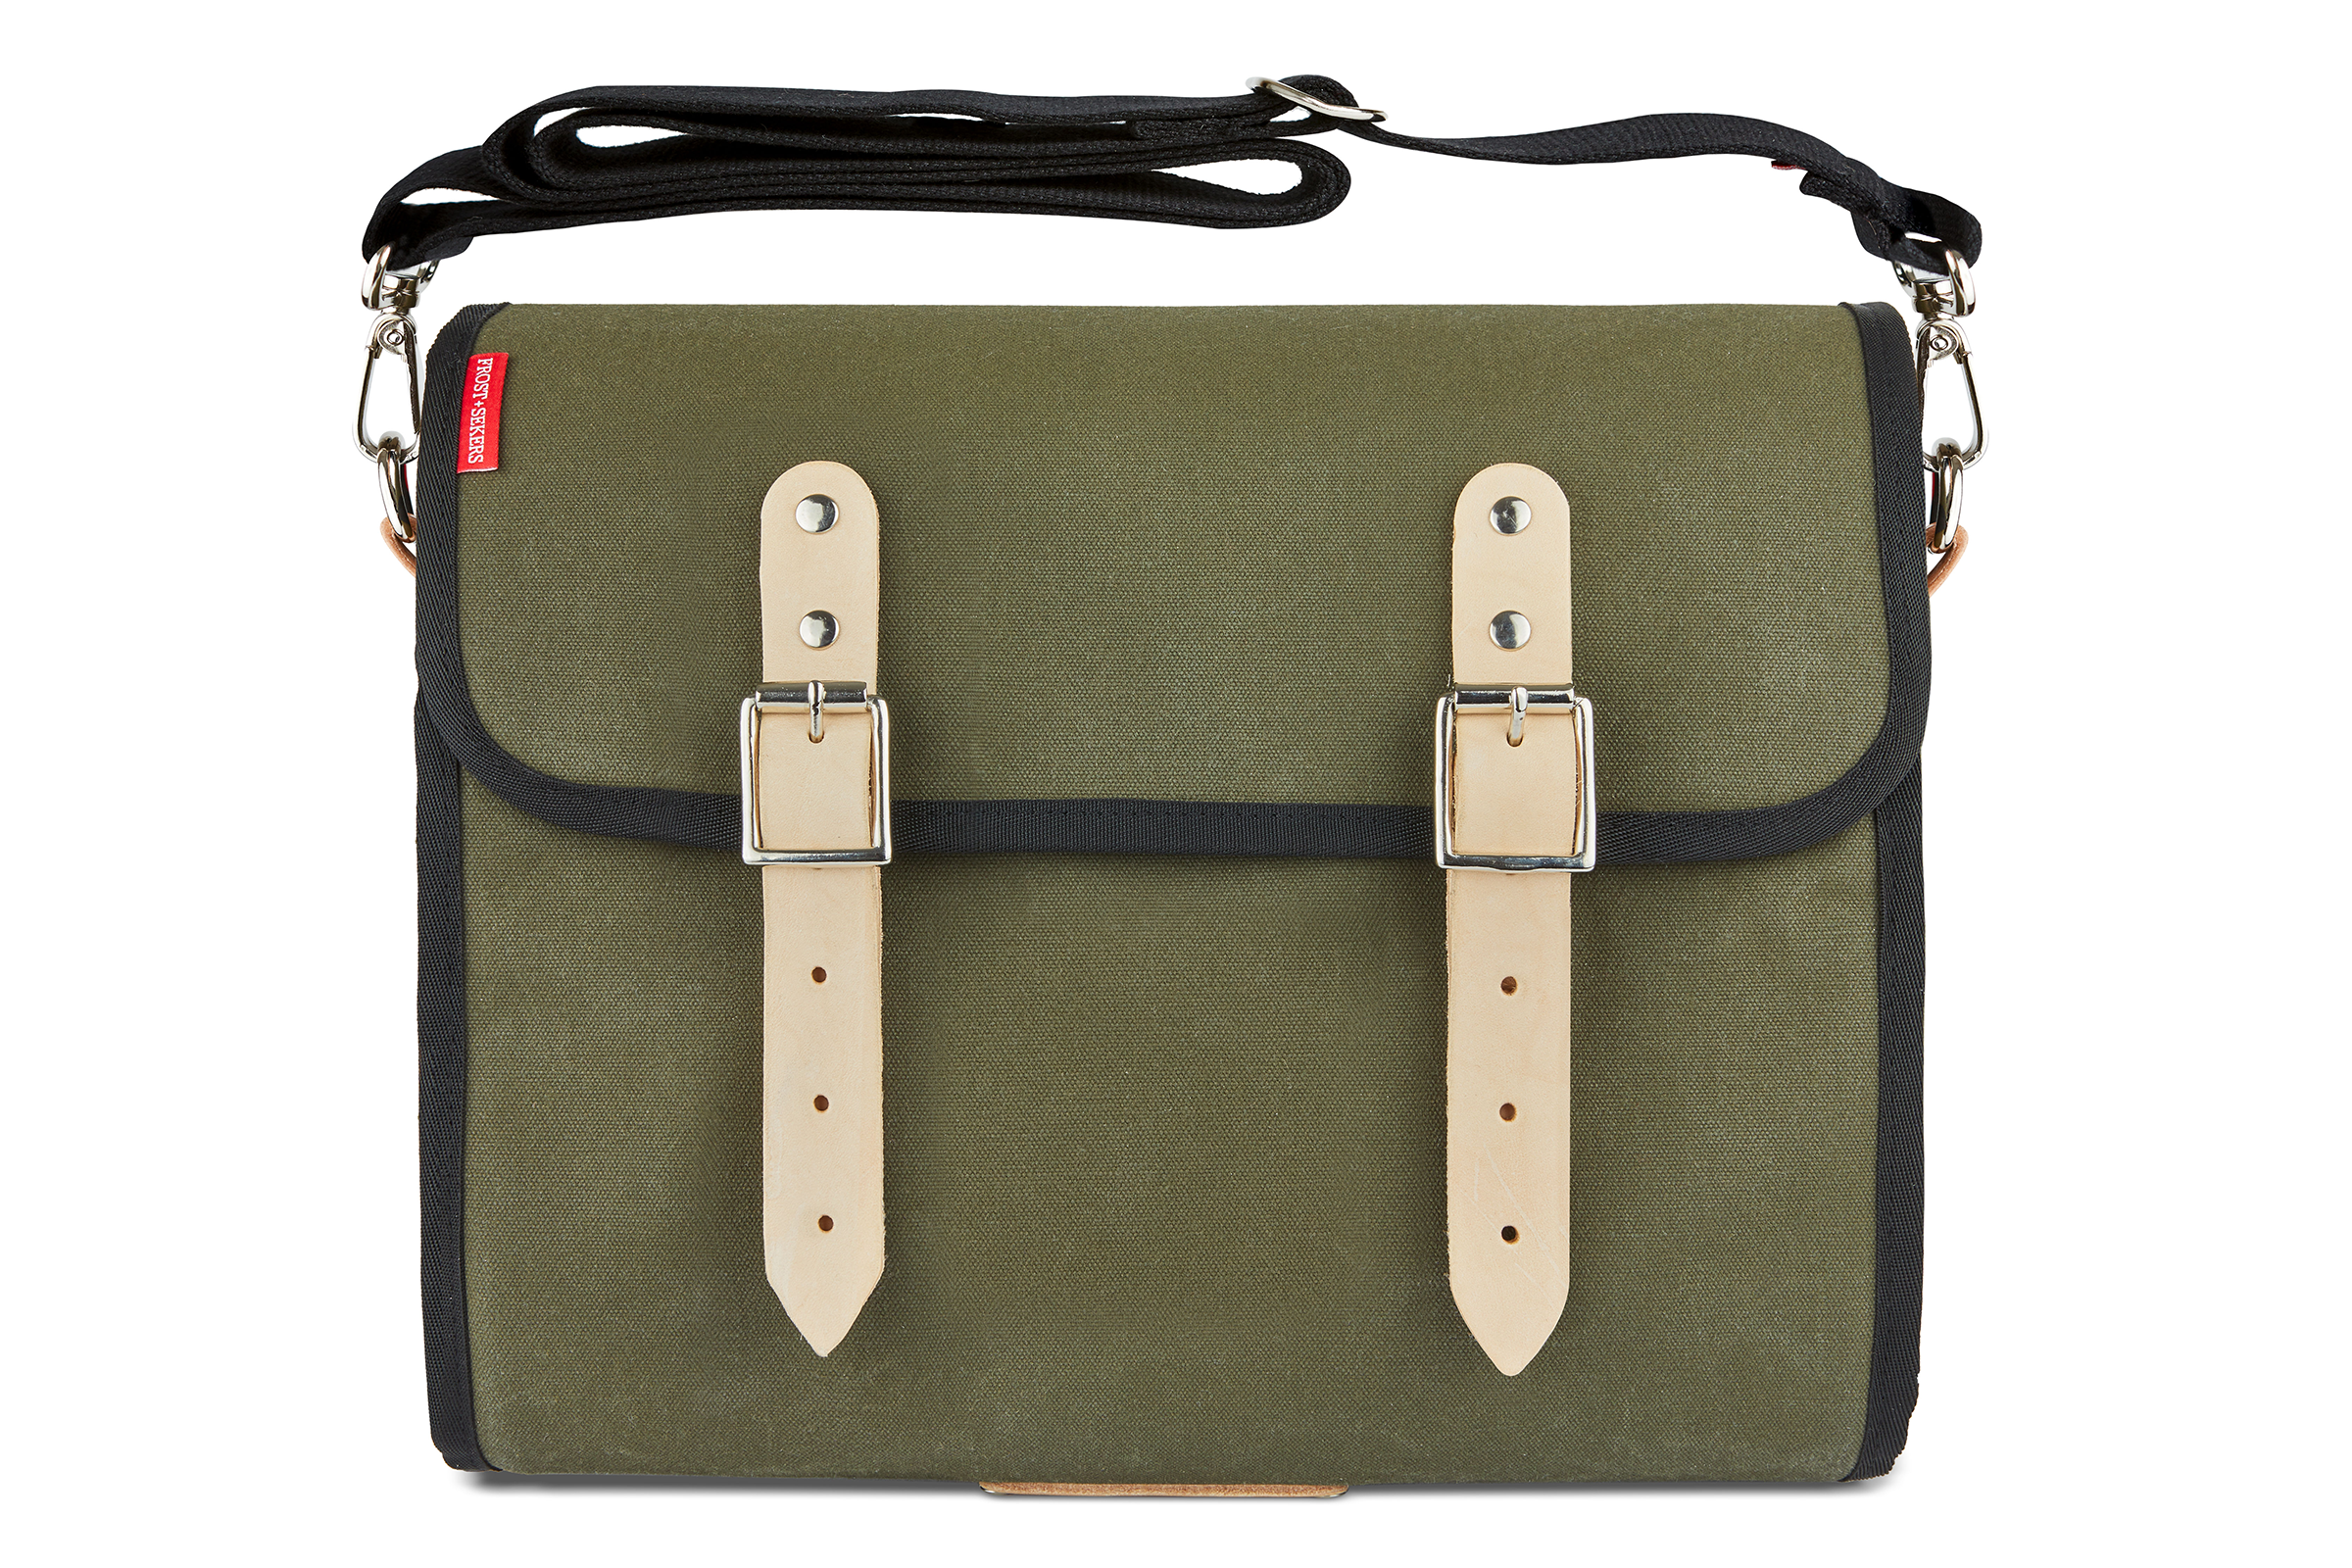 The Marvin, 12L, Compact - Dark Green Canvas, Tan Leather